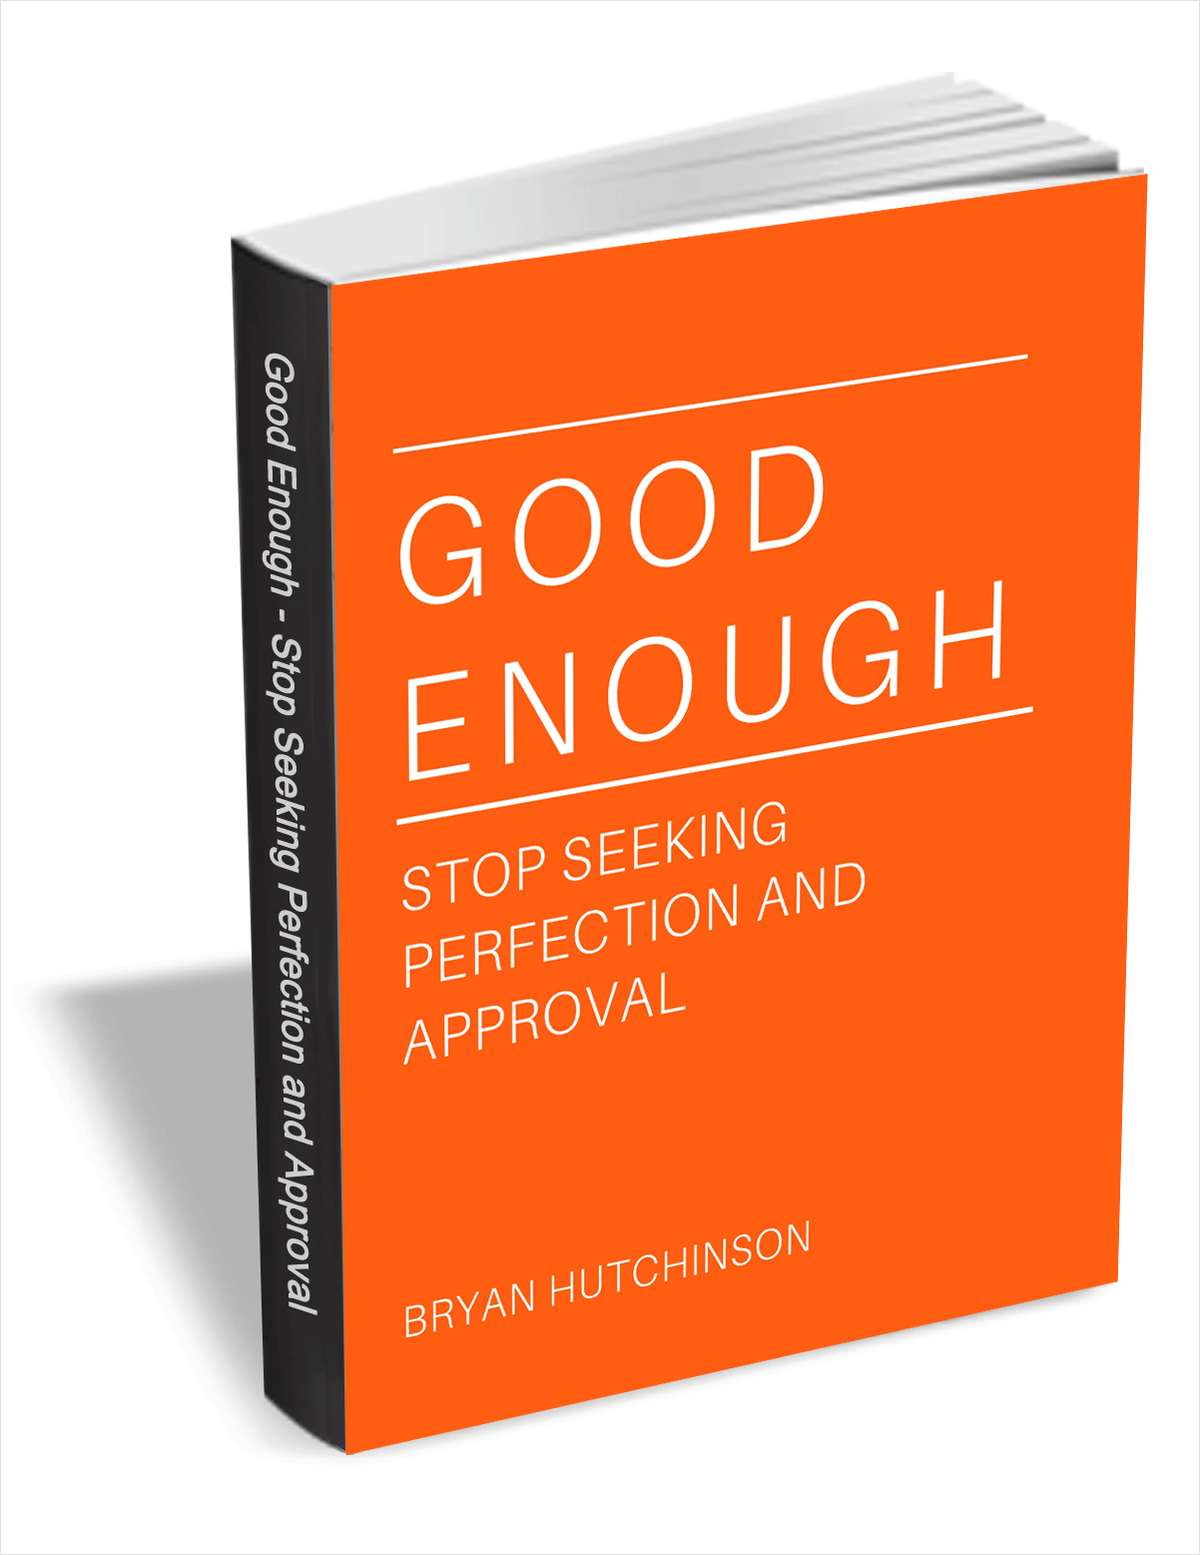 Good Enough - Stop Seeking Perfection and Approval